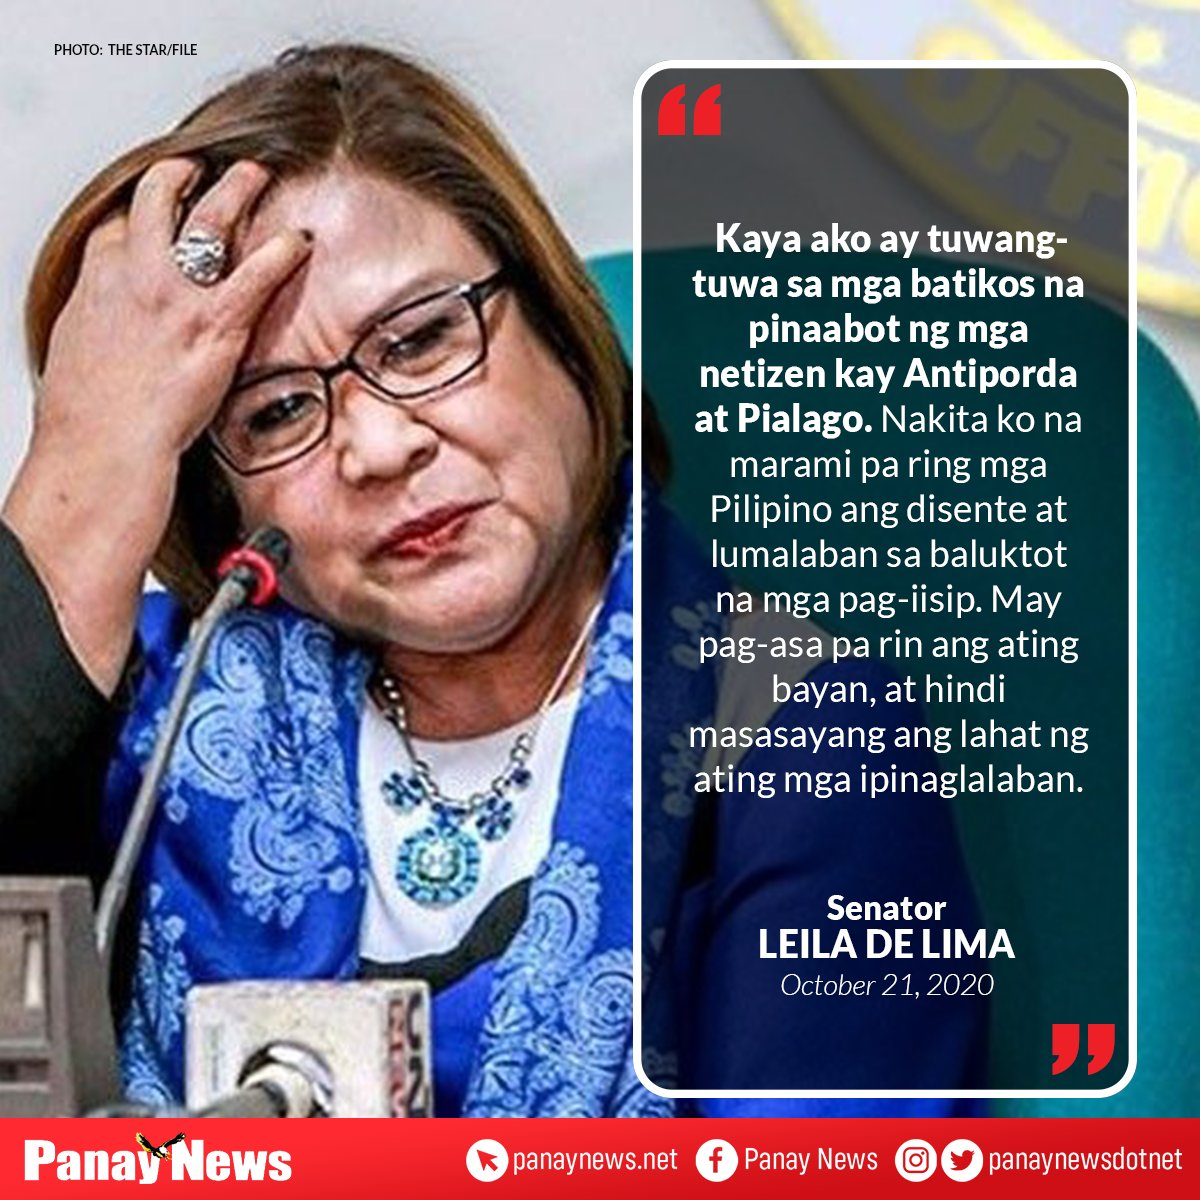 Here's the reaction of Sen. Leila de Lima on the controversial statements made by Environment Usec. Benny Antiporda and MMDA spokesperson Celine Pialago last week.  #PanayNews https://t.co/6tPfRgJQTX